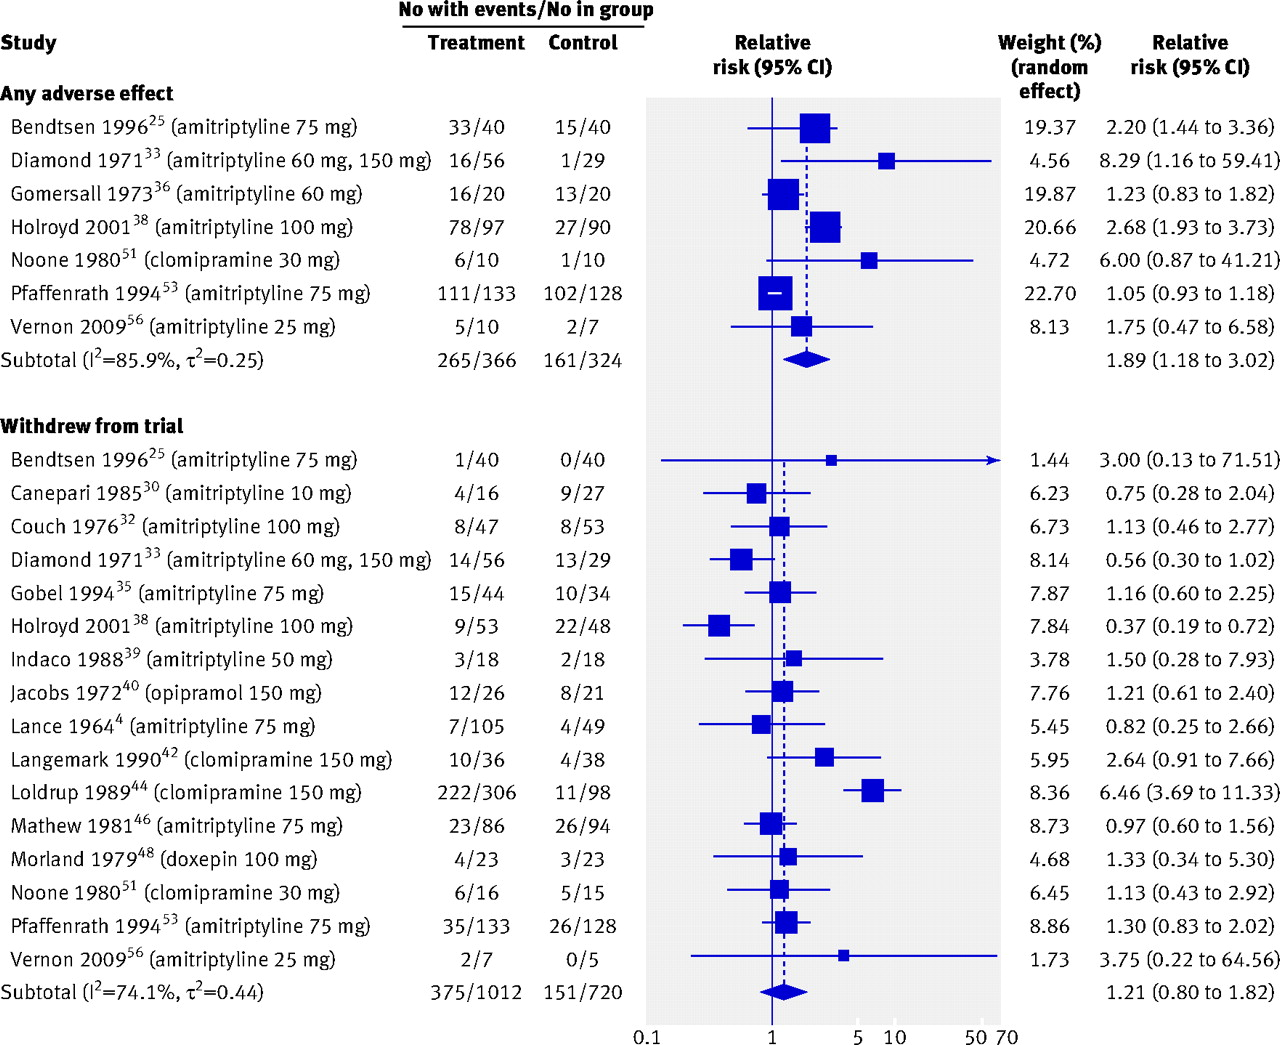 antidepressant vs placebo essay In one remarkable case, a participant in an antidepressant drug trial was given placebo tablets — and then swallowed 26 of them in a suicide attempt.